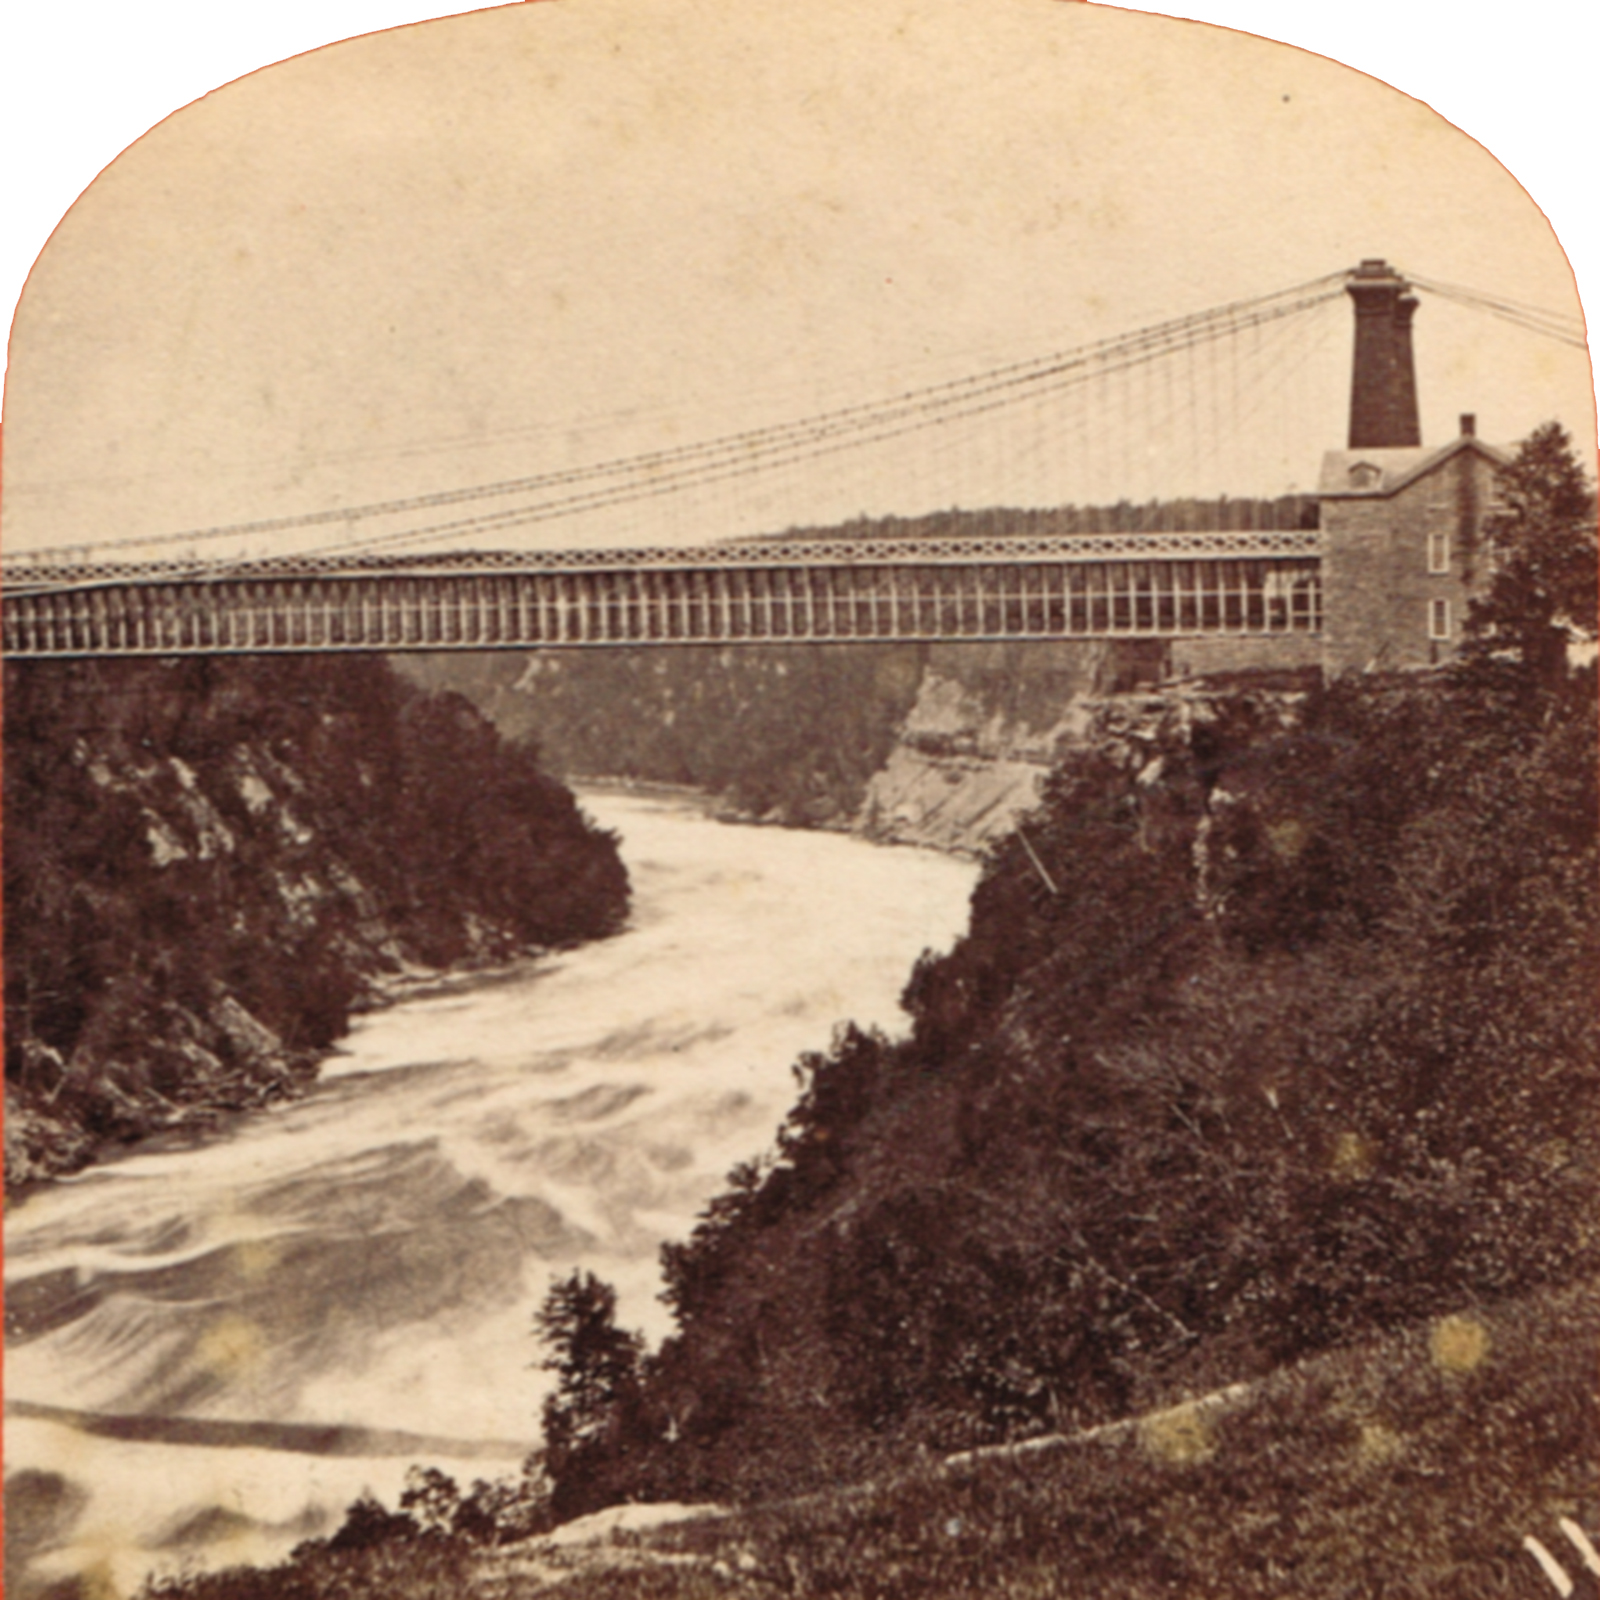 The Niagara Suspension Bridge. Courtesy of Paul A. Tenkotte.